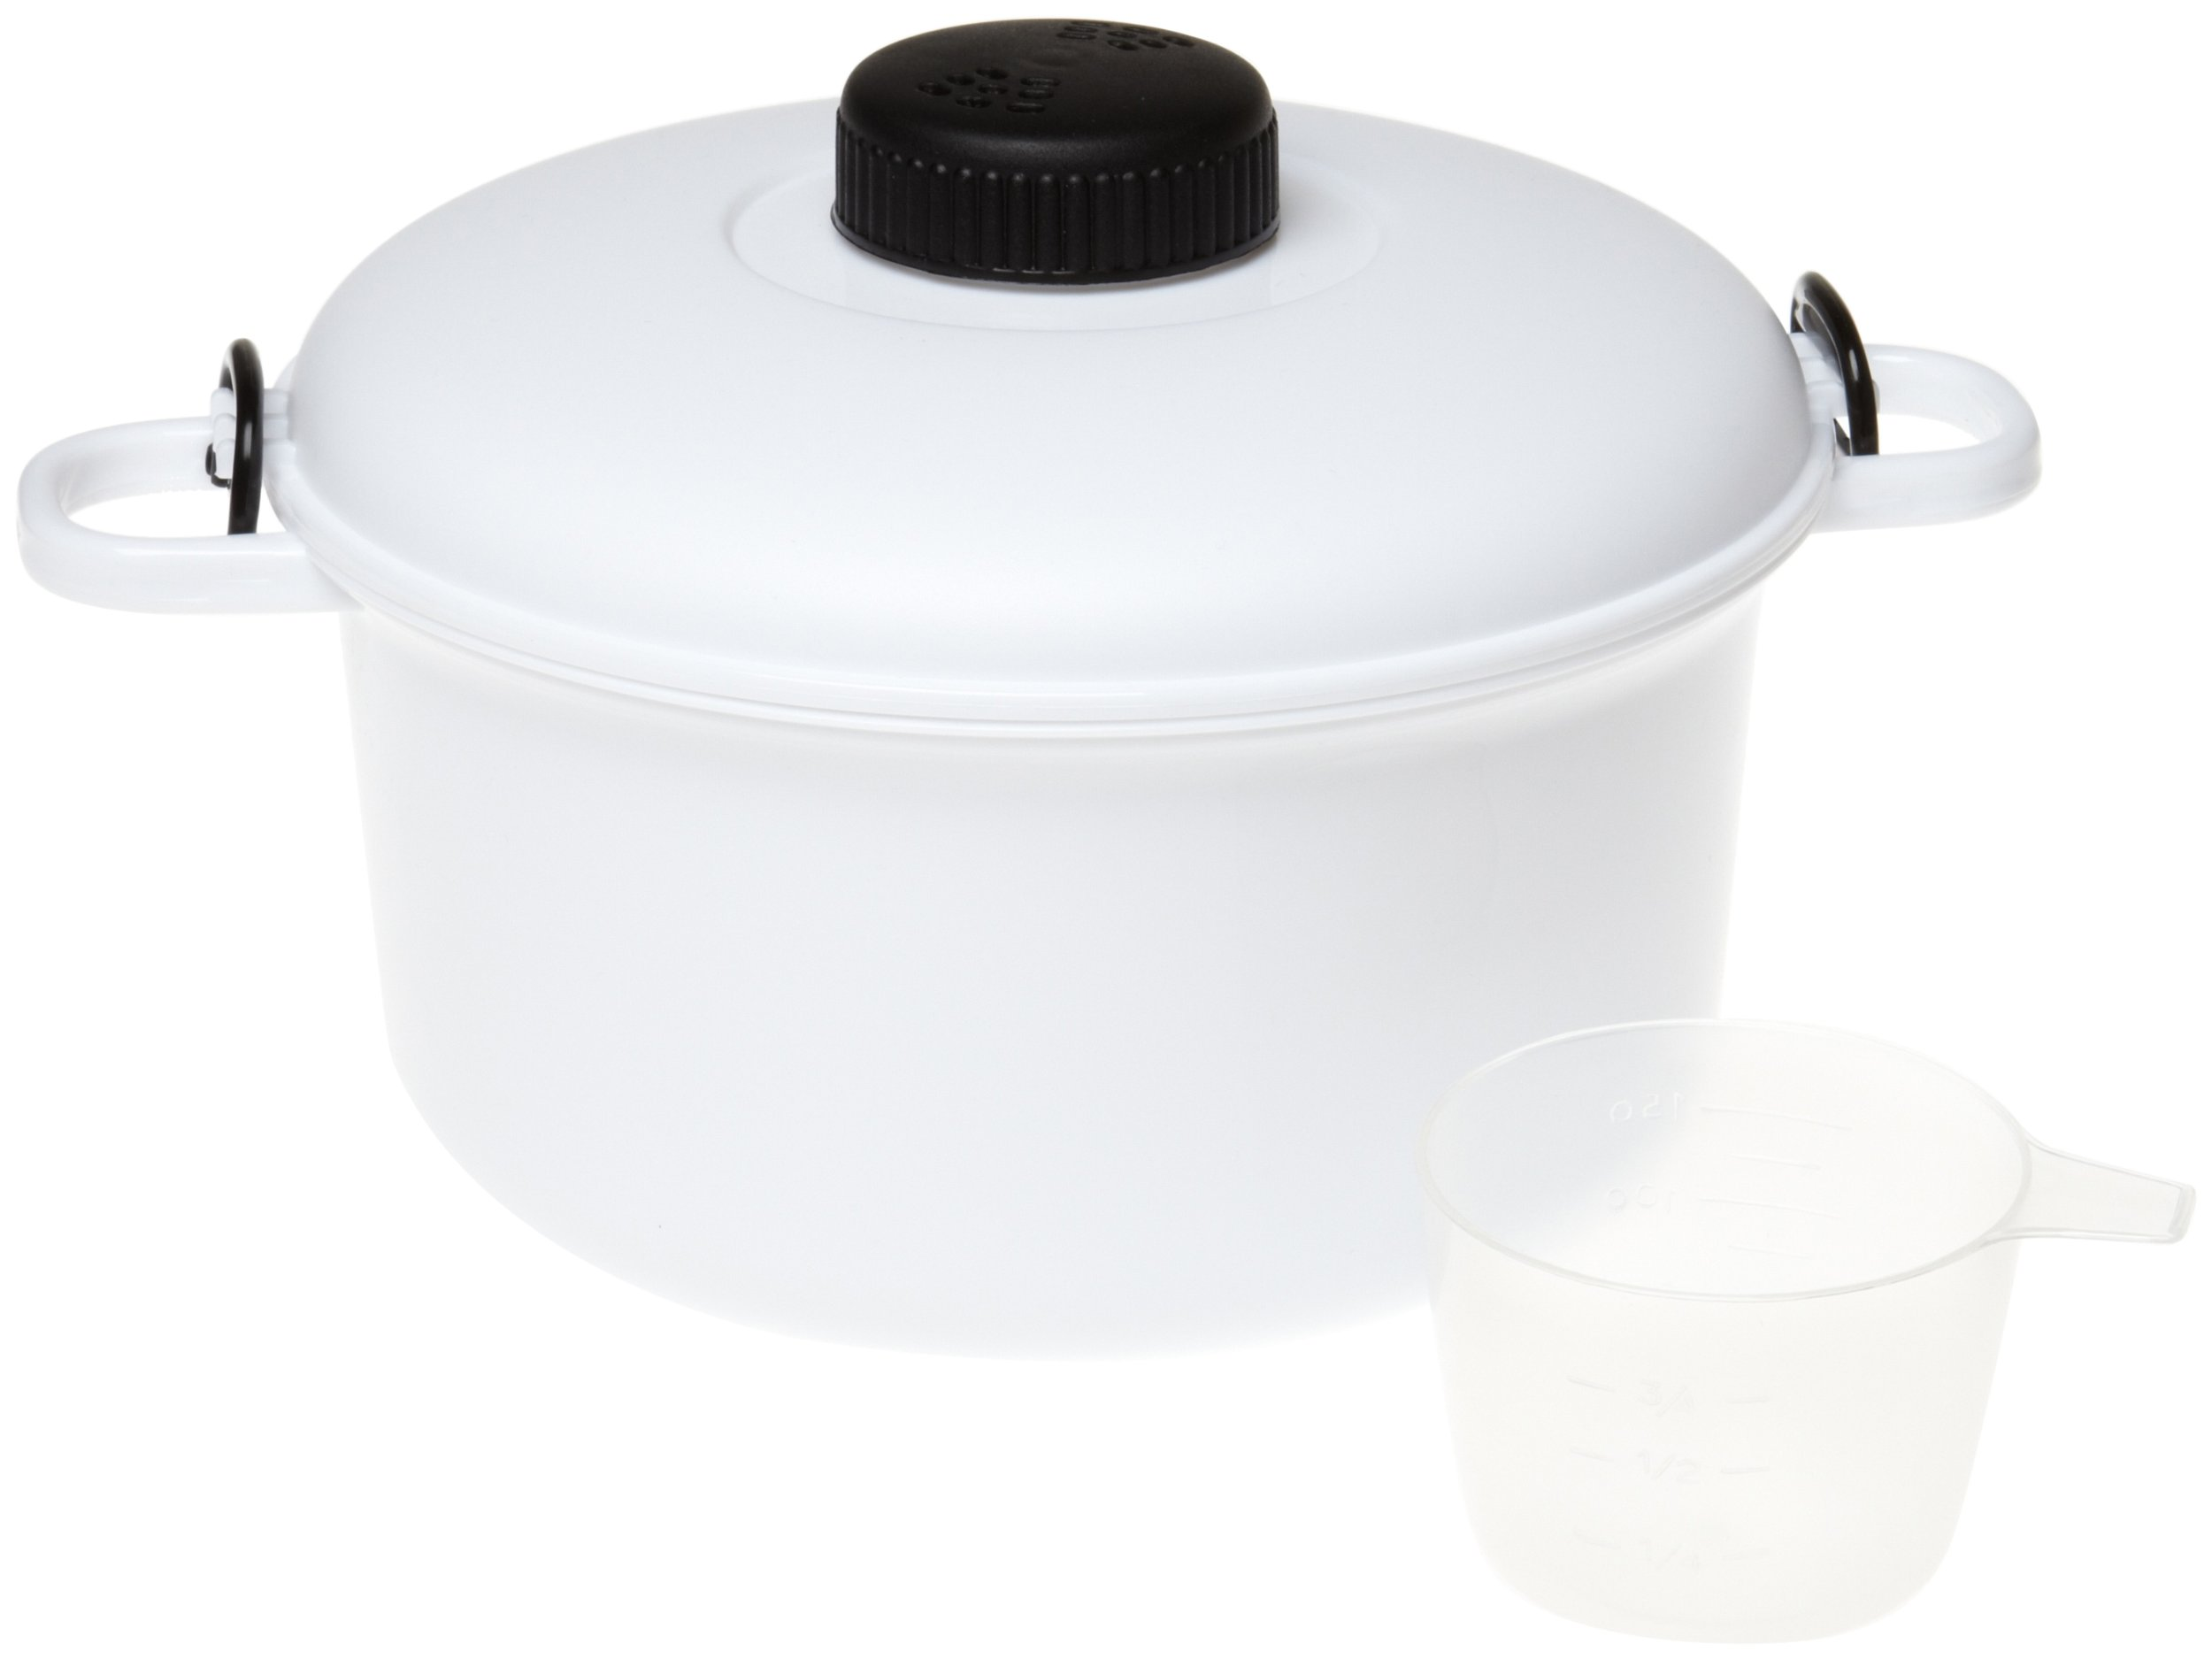 Handy Gourmet Micromaster Pressure Cooker - Cook Hearty Meals in Minutes - 2 1/2 Quart Capacity - Variety of Colors Available - Recipe Book & Measuring Book Inlcuded (White) by Handy Gourmet (Image #1)